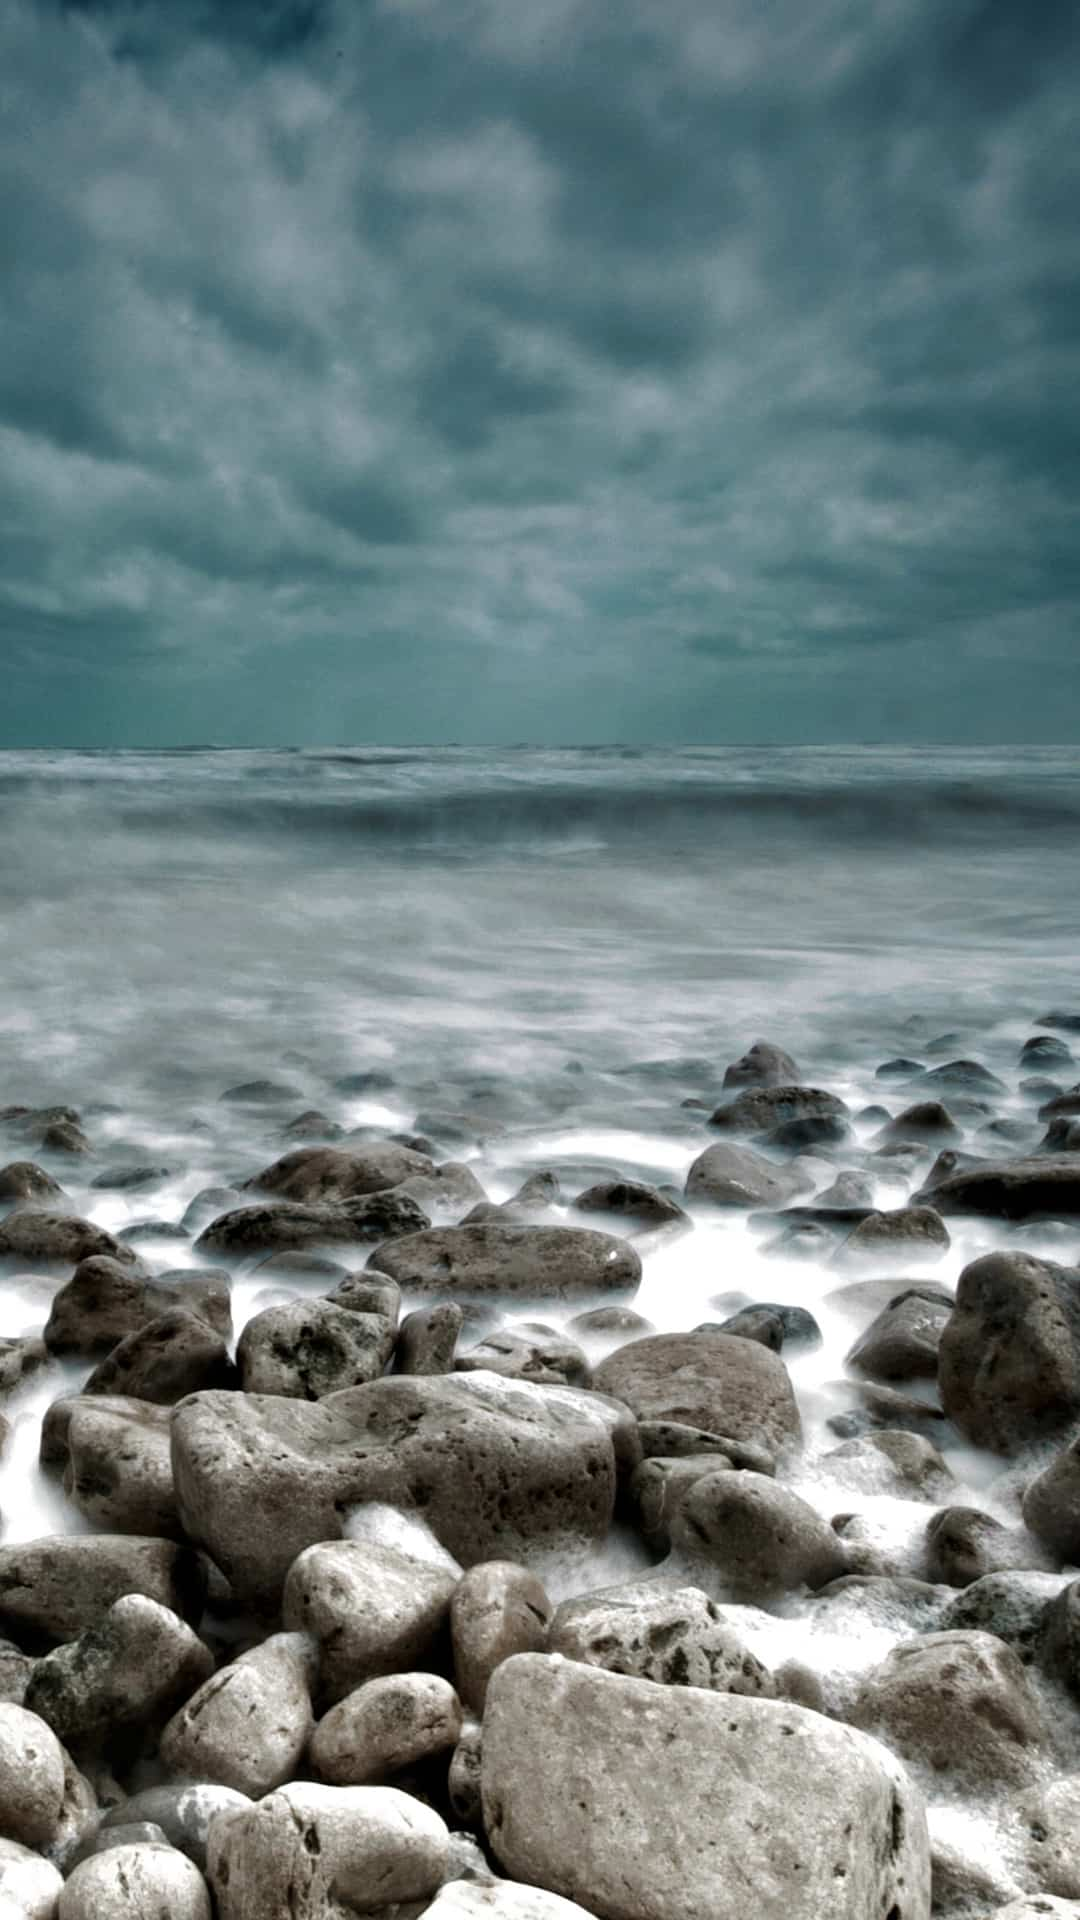 Rough Sea Rocks Waves Lockscreen Android Wallpaper